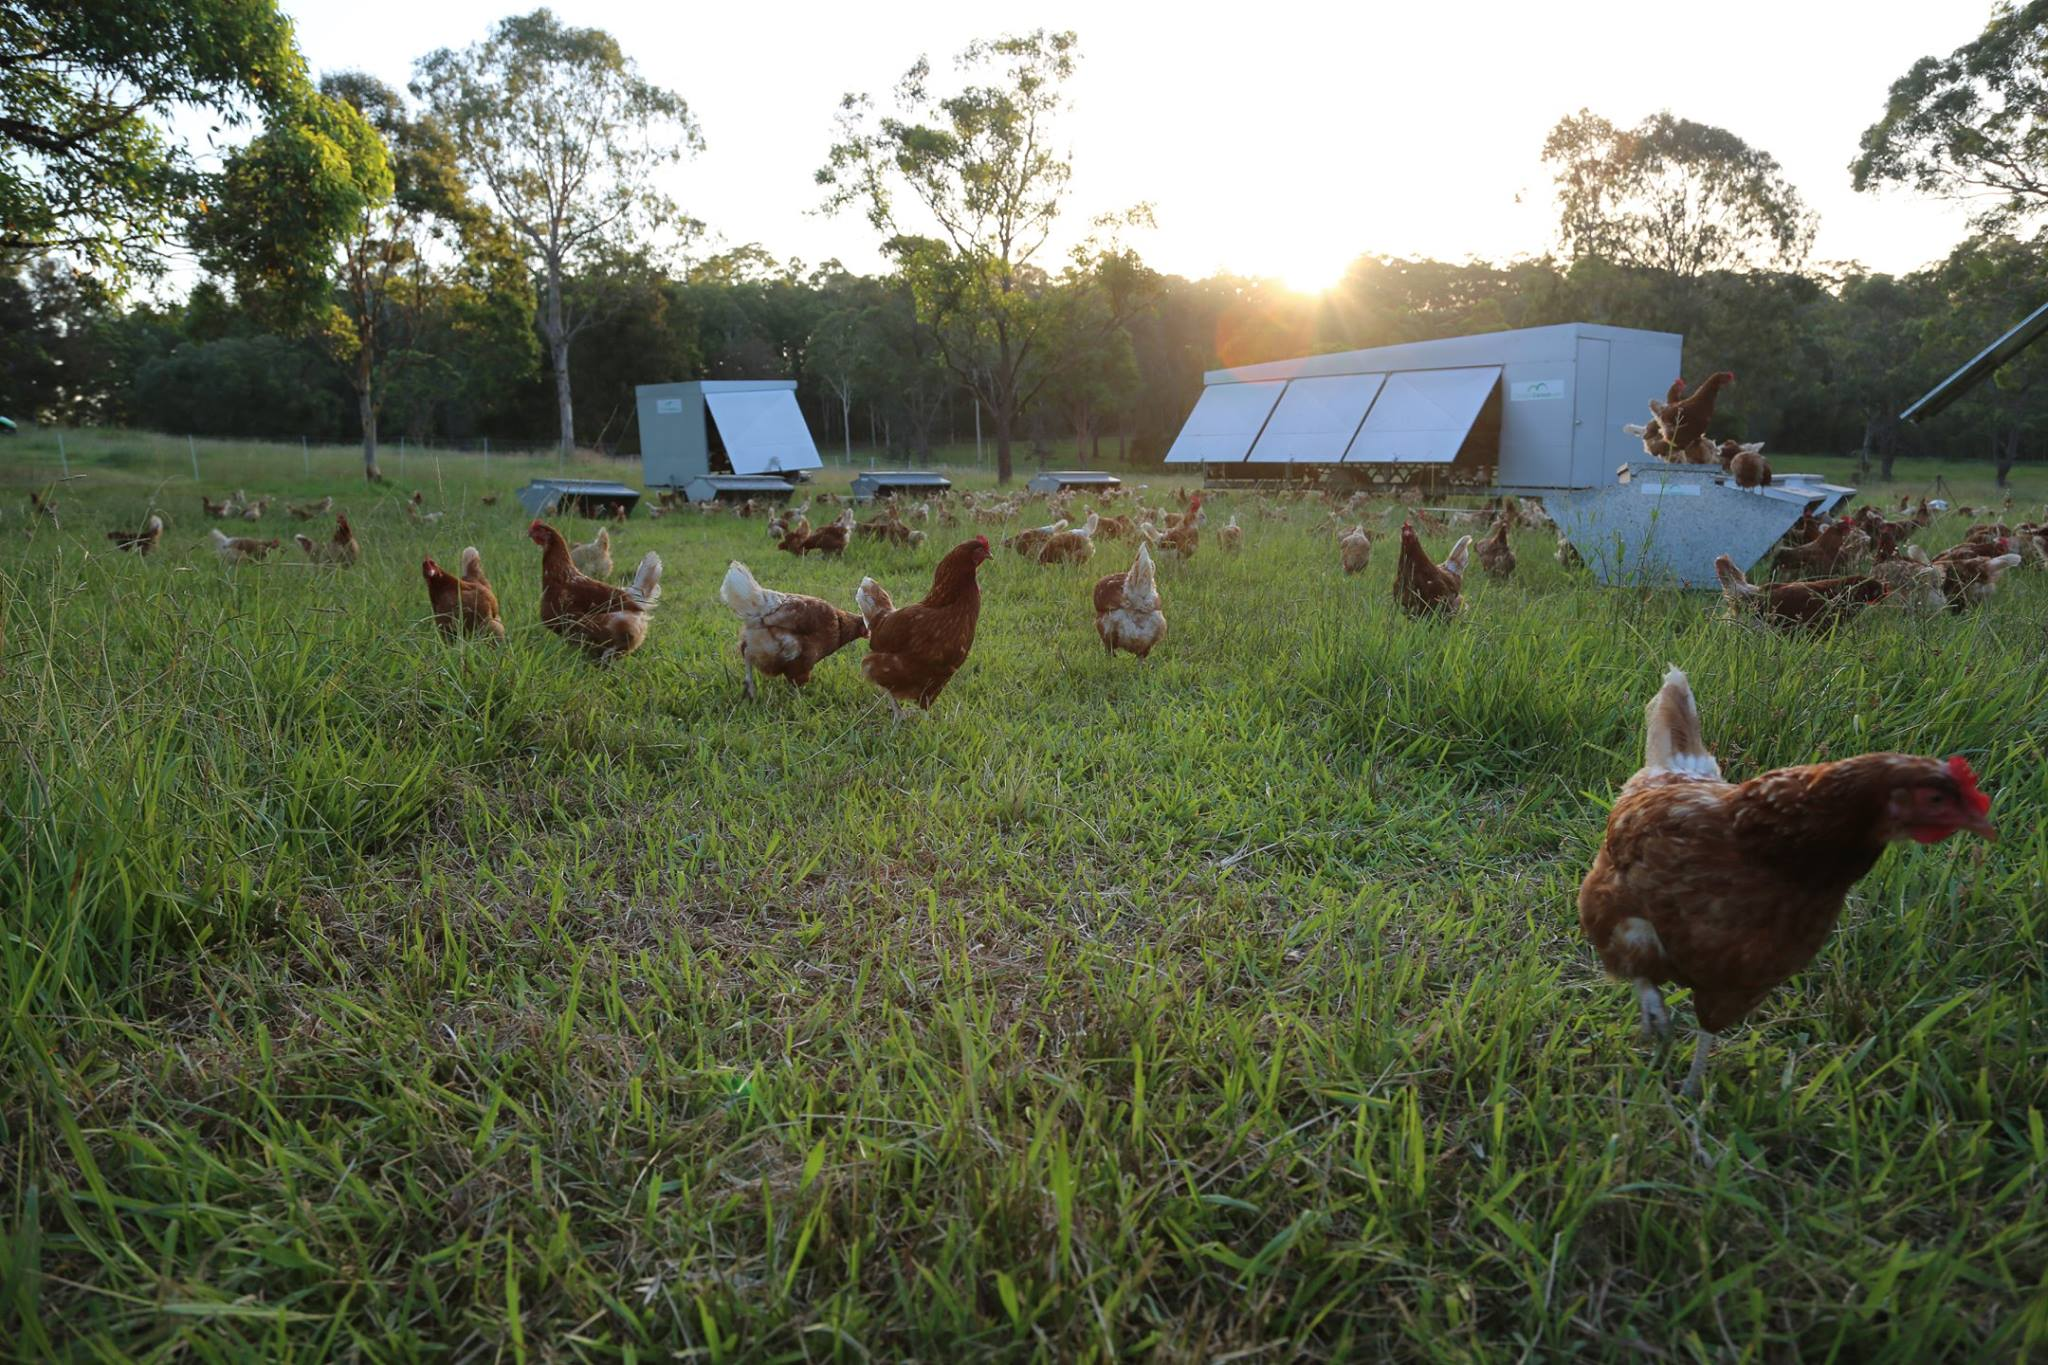 Mobile caravans for our chickens